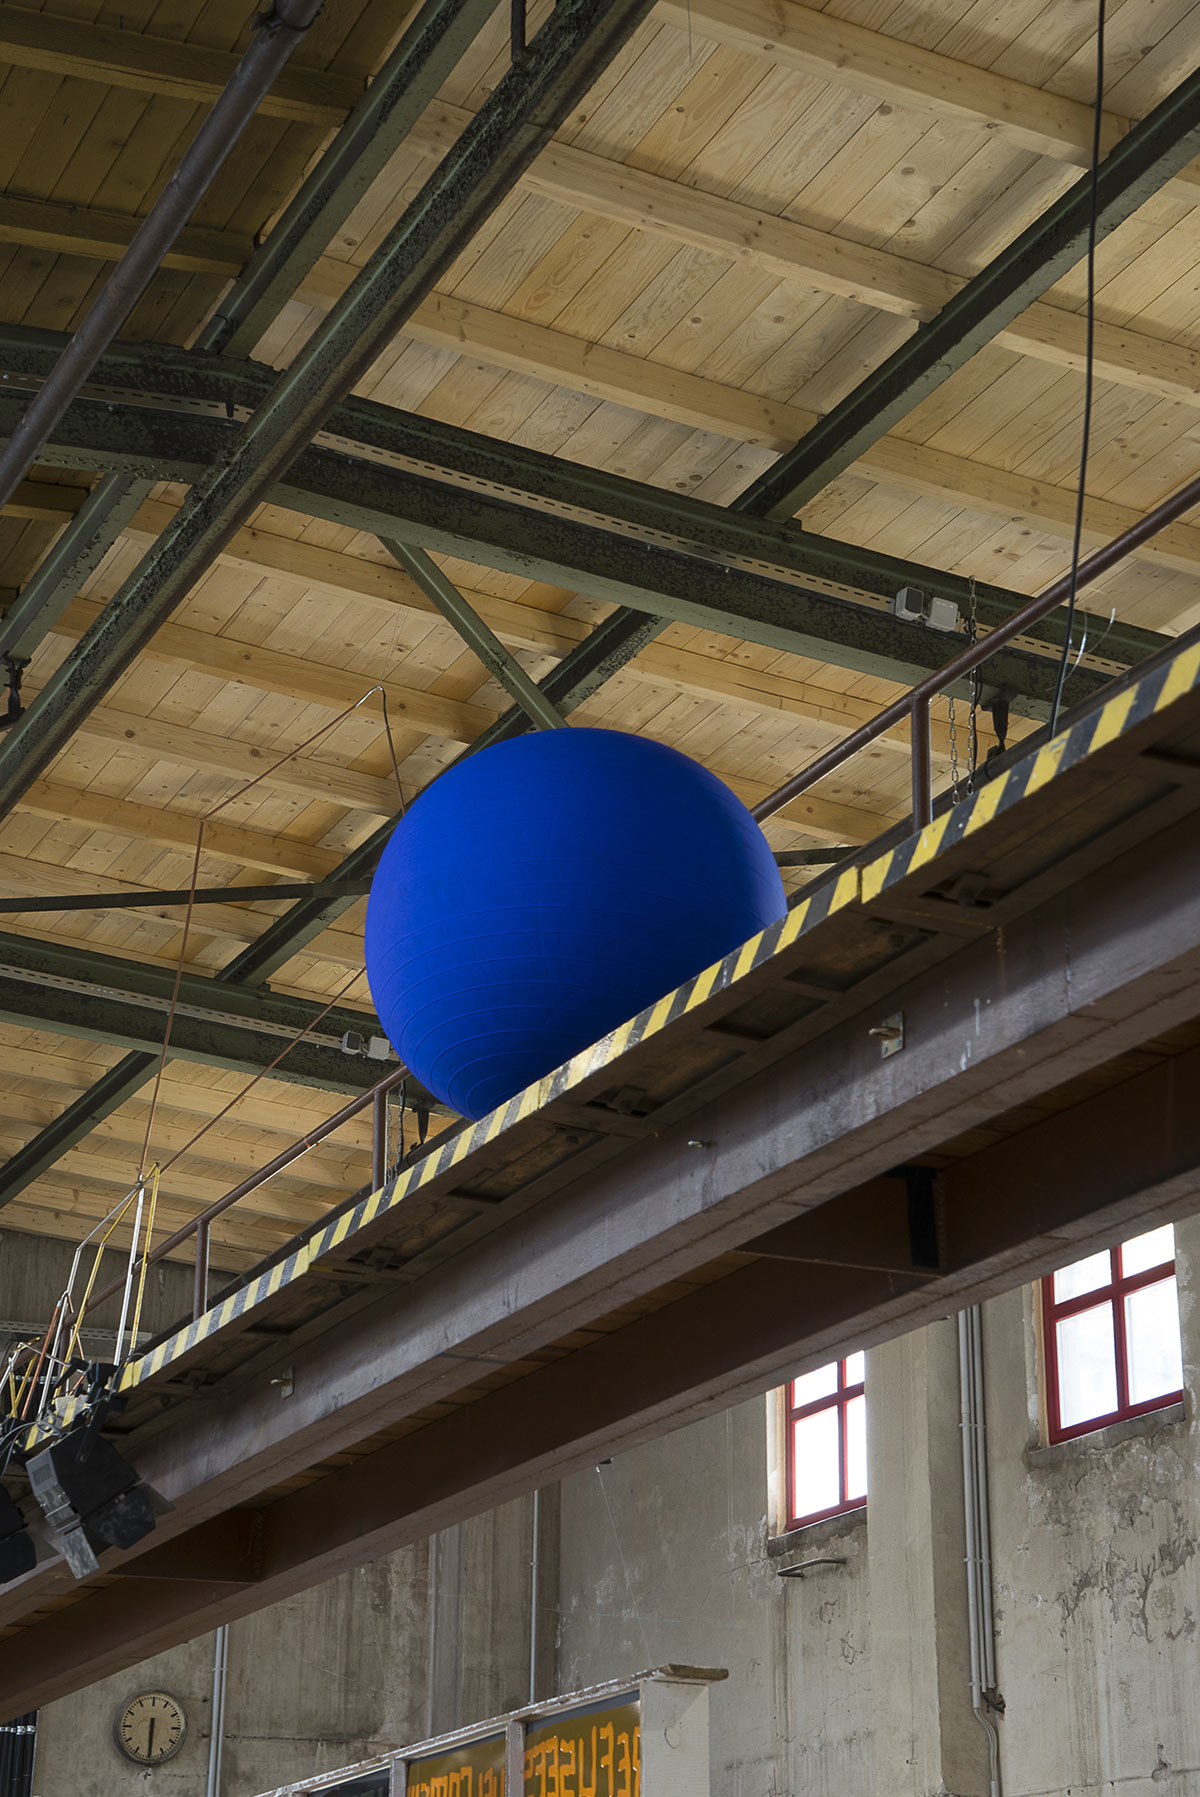 Save the Day, The Day Yves Klein Lost his Marbles in a Laundry, (Detail), Ausstellungsansicht GEH8, Dresden, 2020